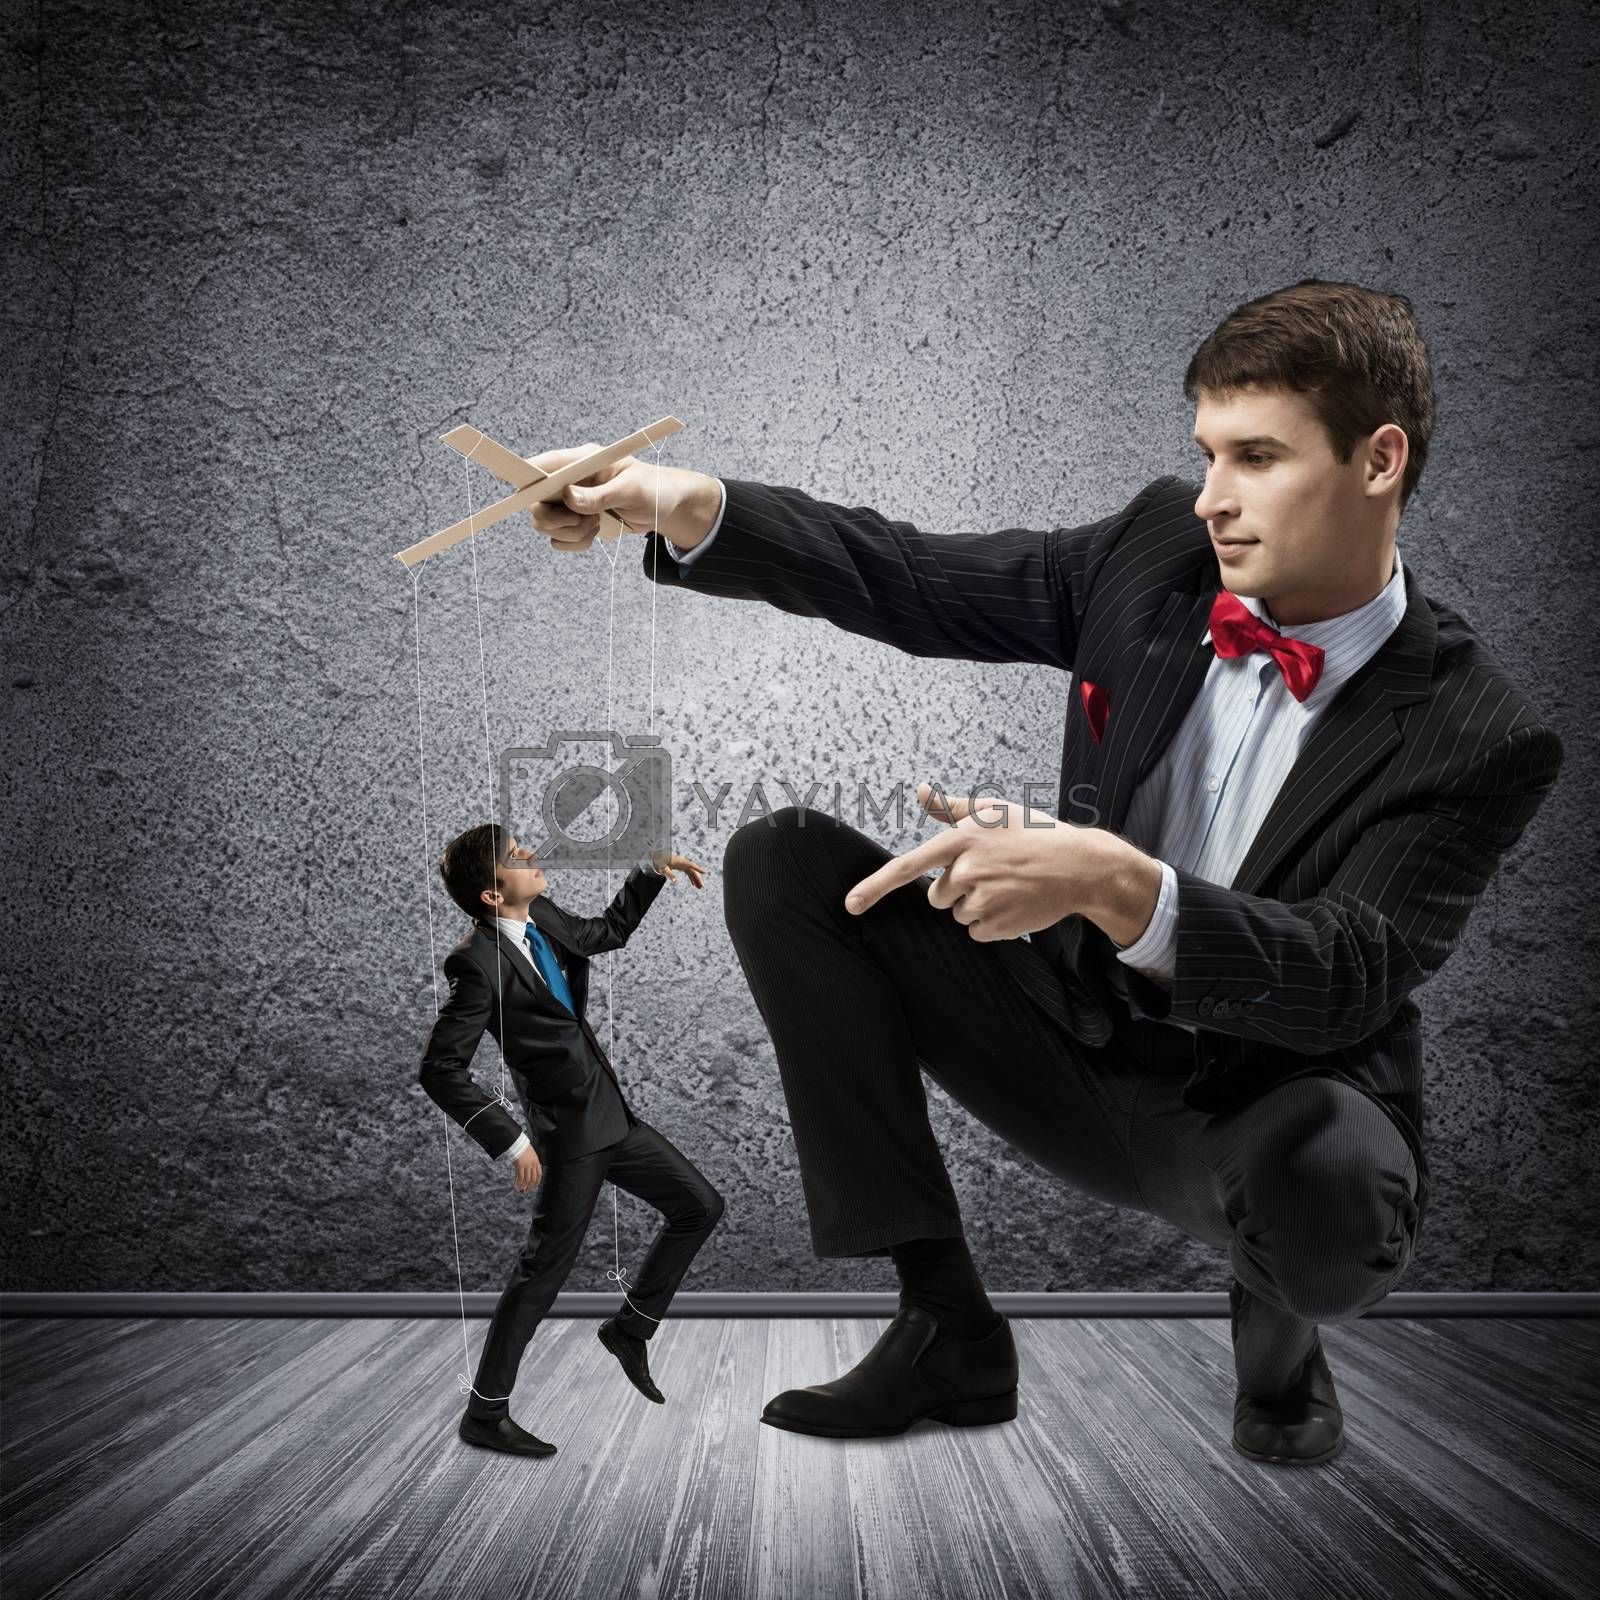 Royalty free image of puppeteer and puppet business by adam121